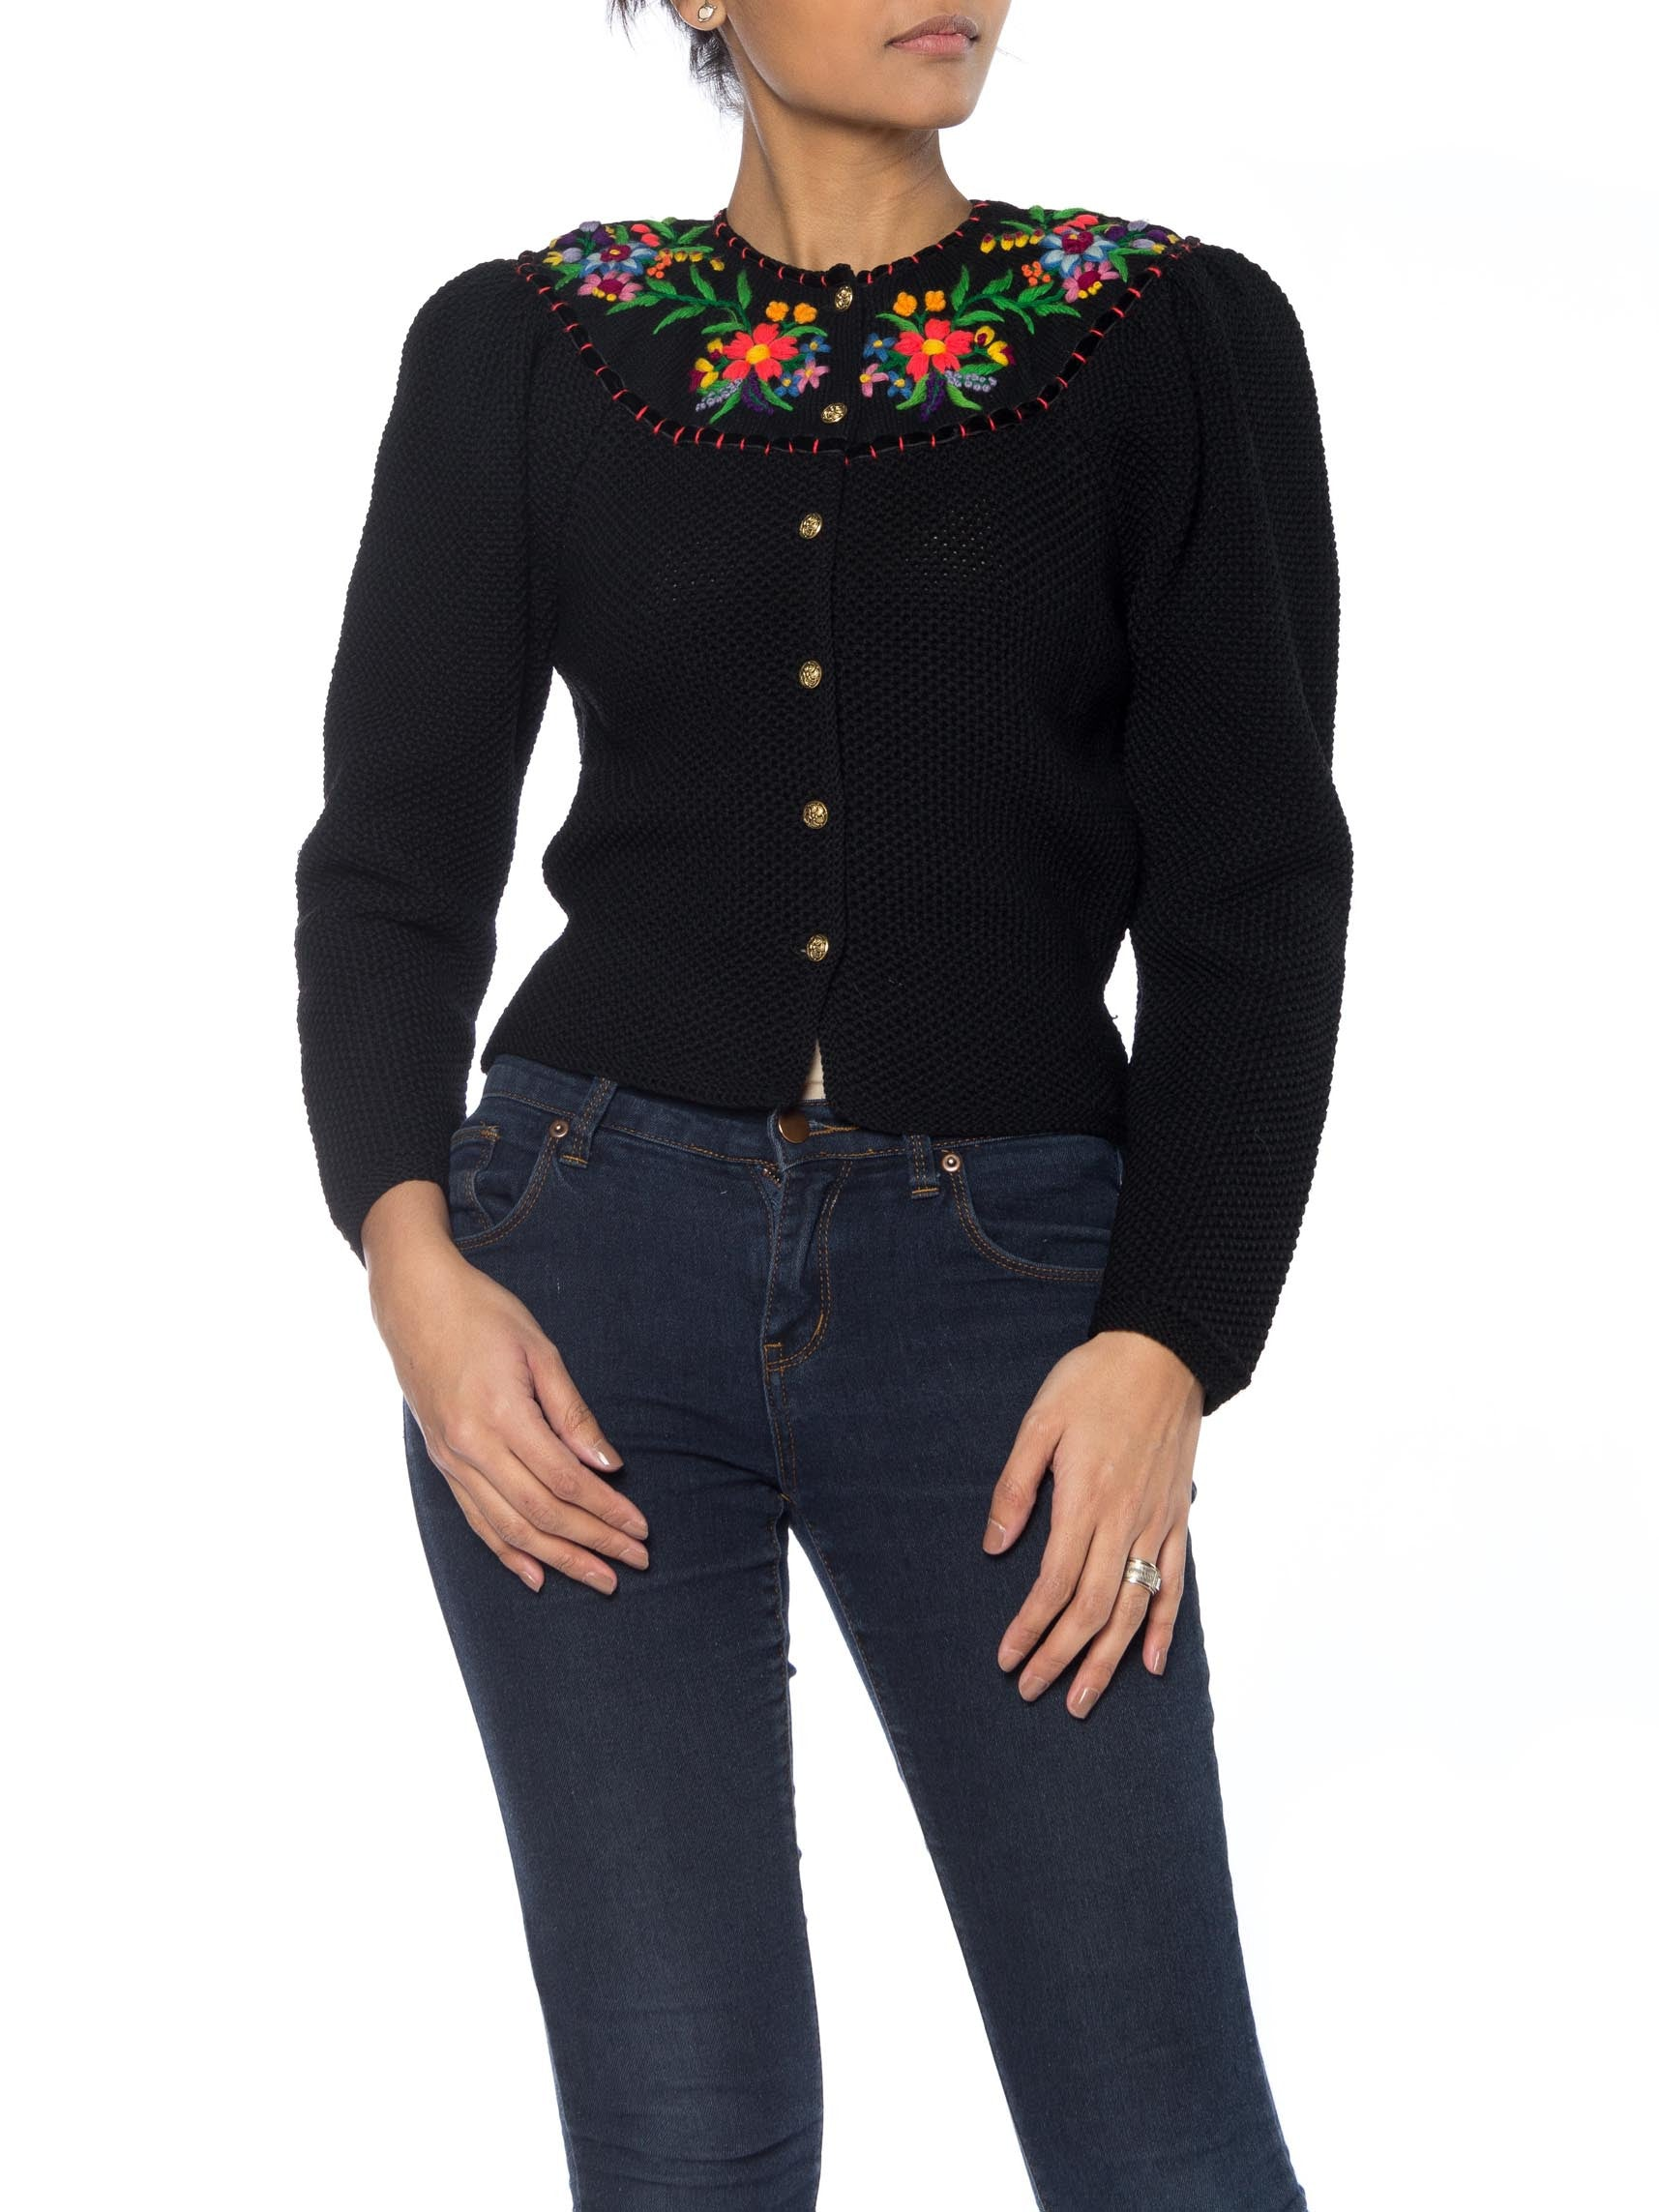 Black Sweater with Multicolor Floral Ethnic Embroidery